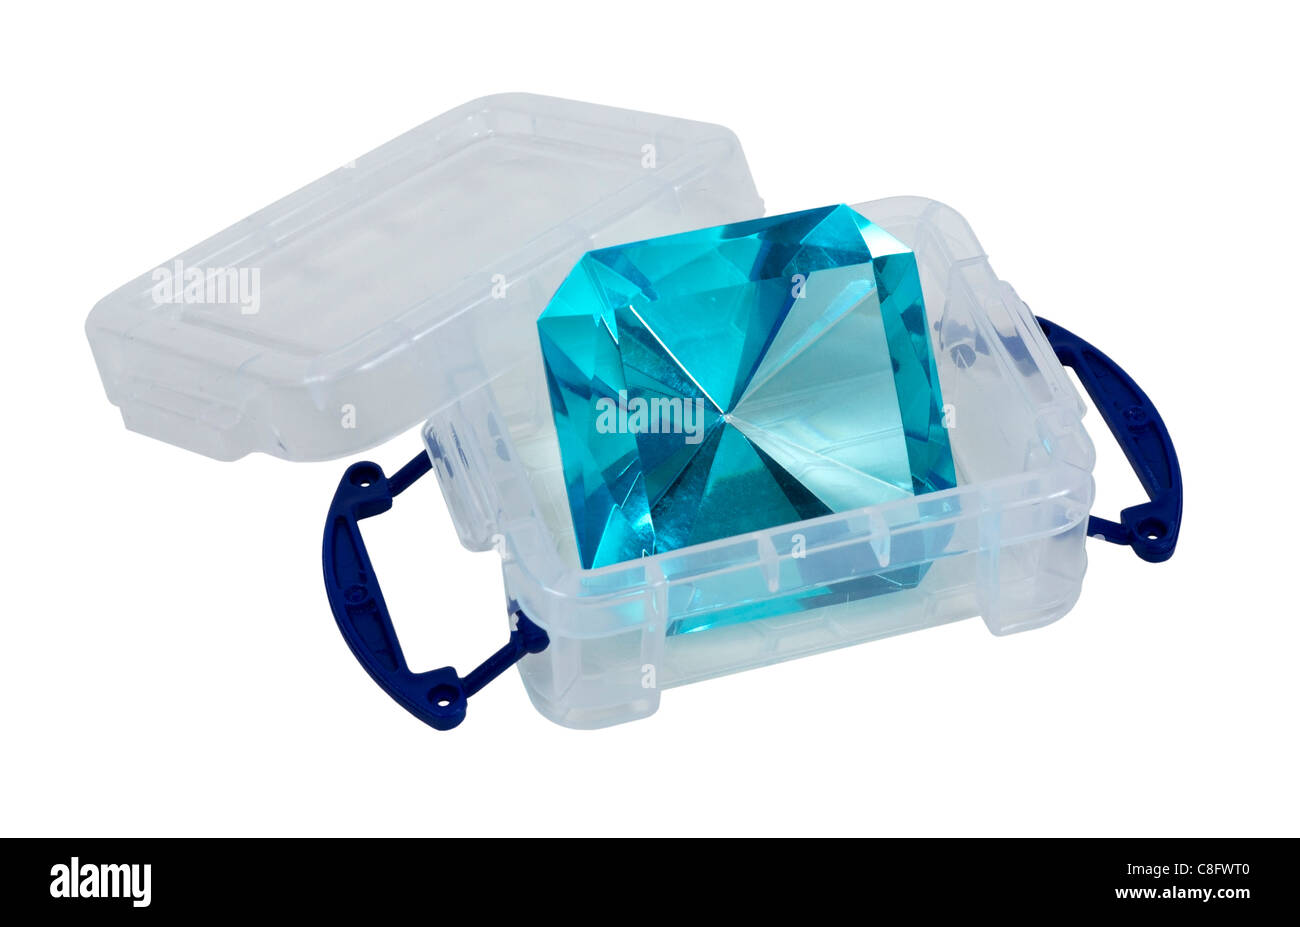 Large blue gem in a plastic crate with blue handles - path included - Stock Image